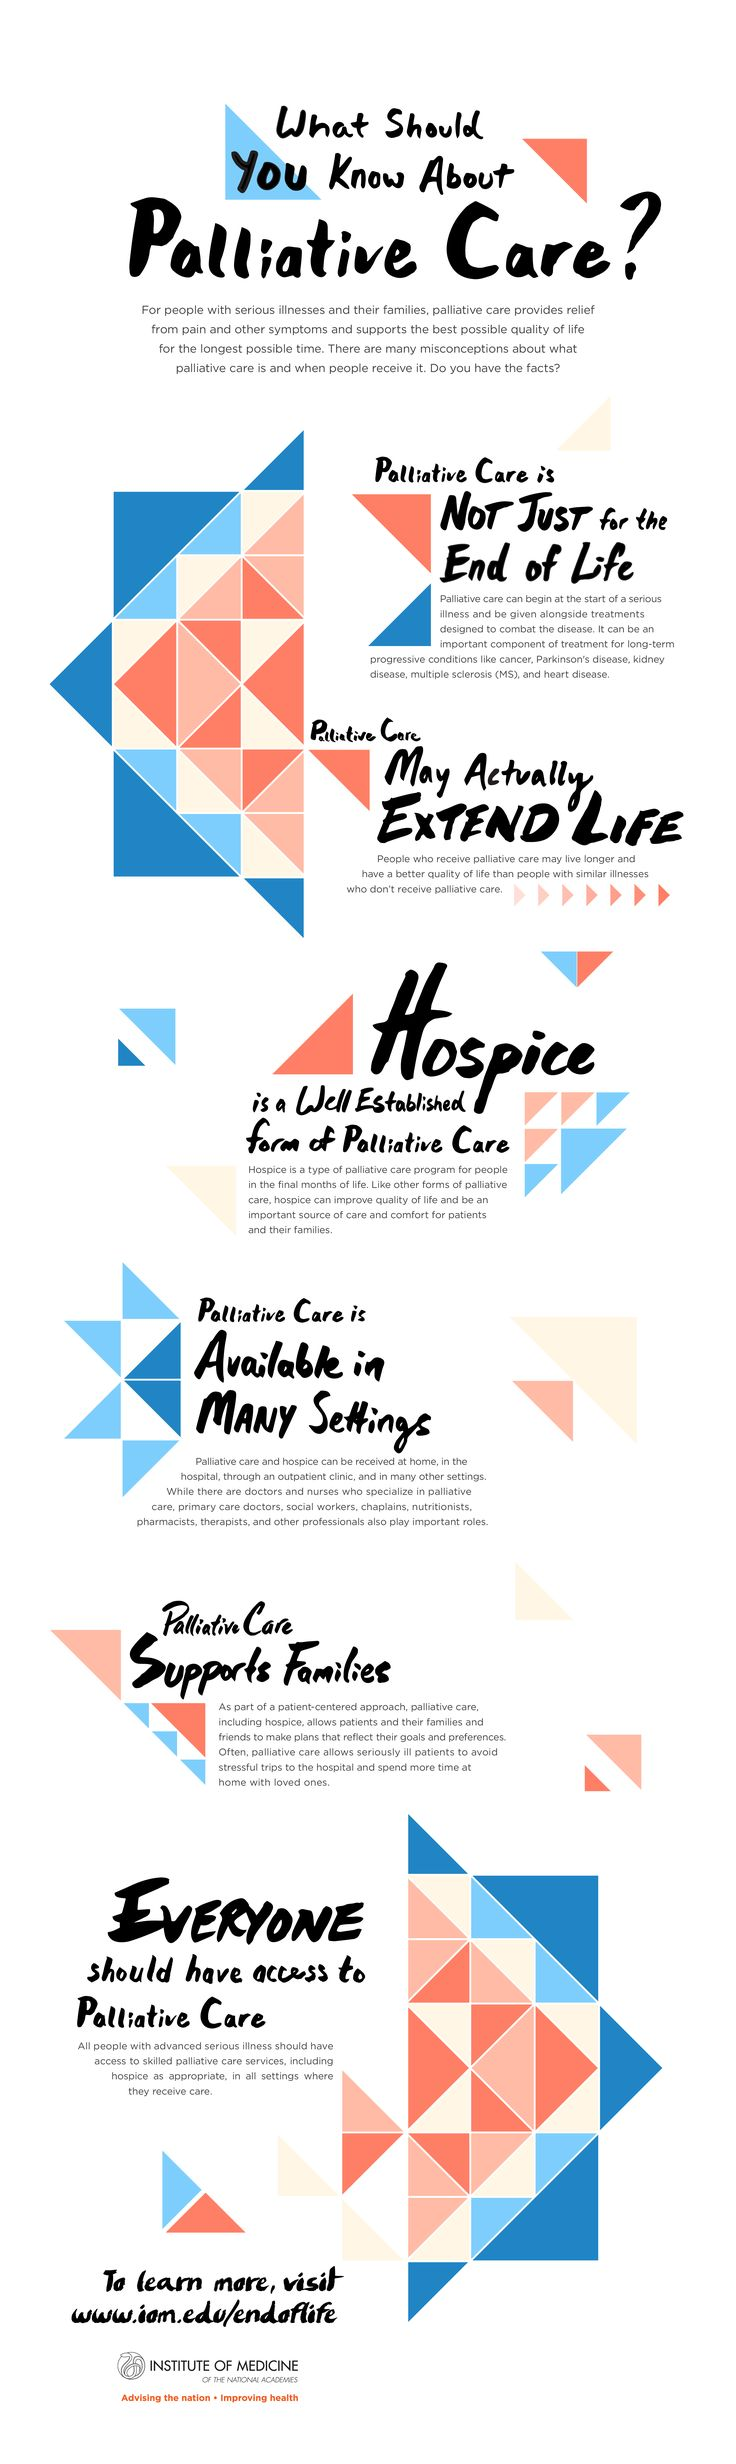 palliative care essay images about palliative care bad news game  images about palliative care bad news palliative care graphics from national acadamies dying in america